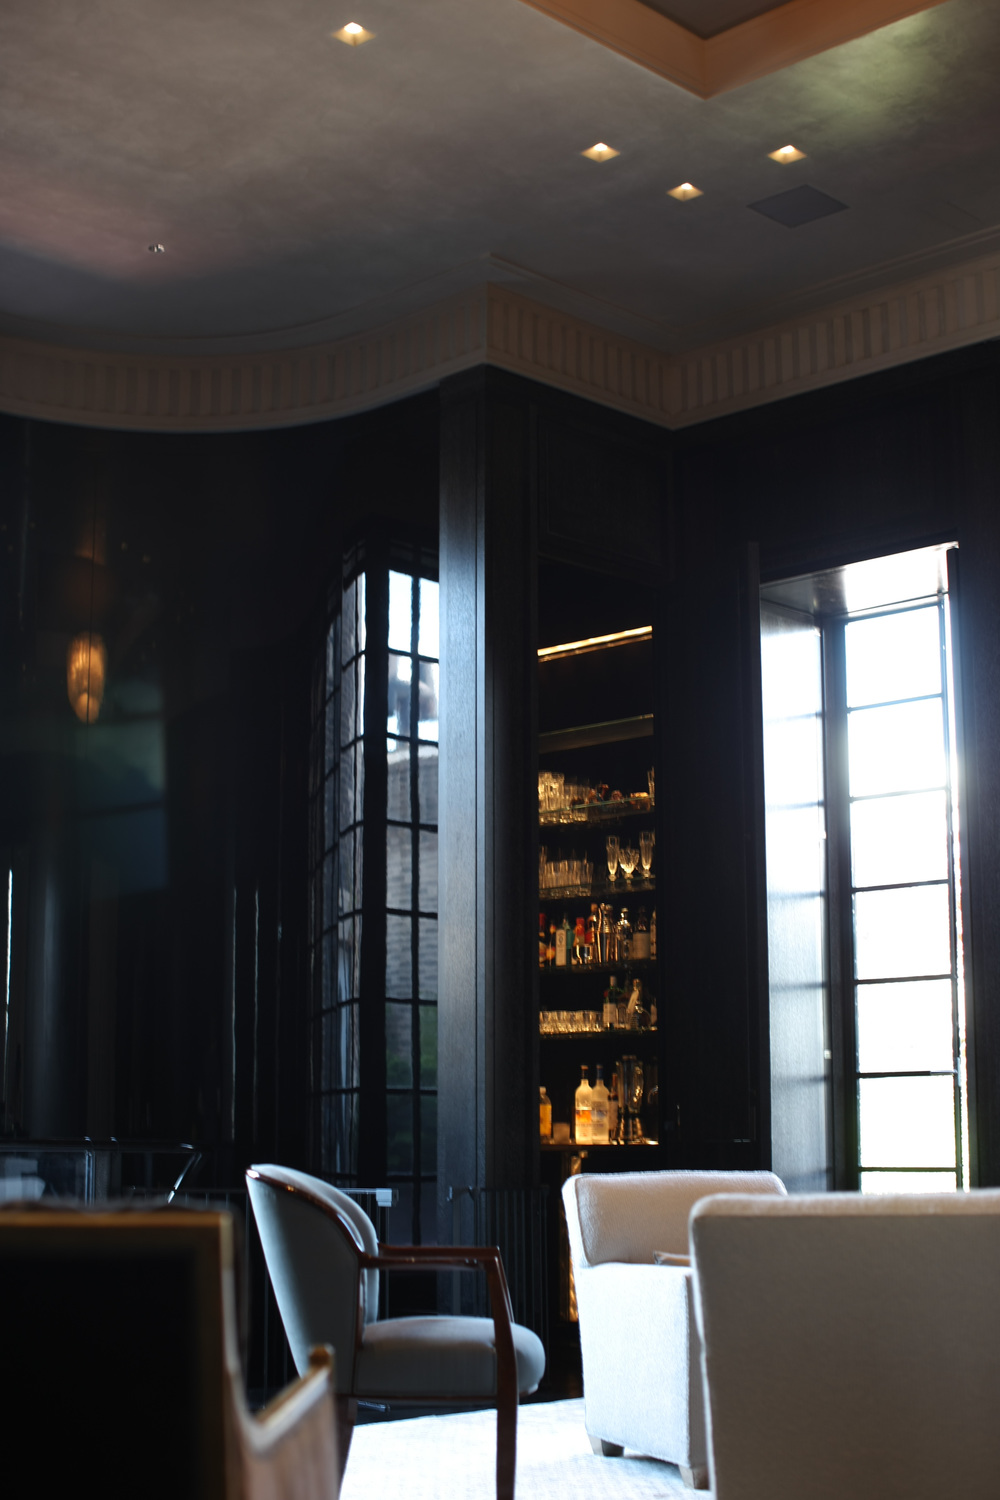 Wet bar - High gloss black lacquer wall panels and gilded ceiling